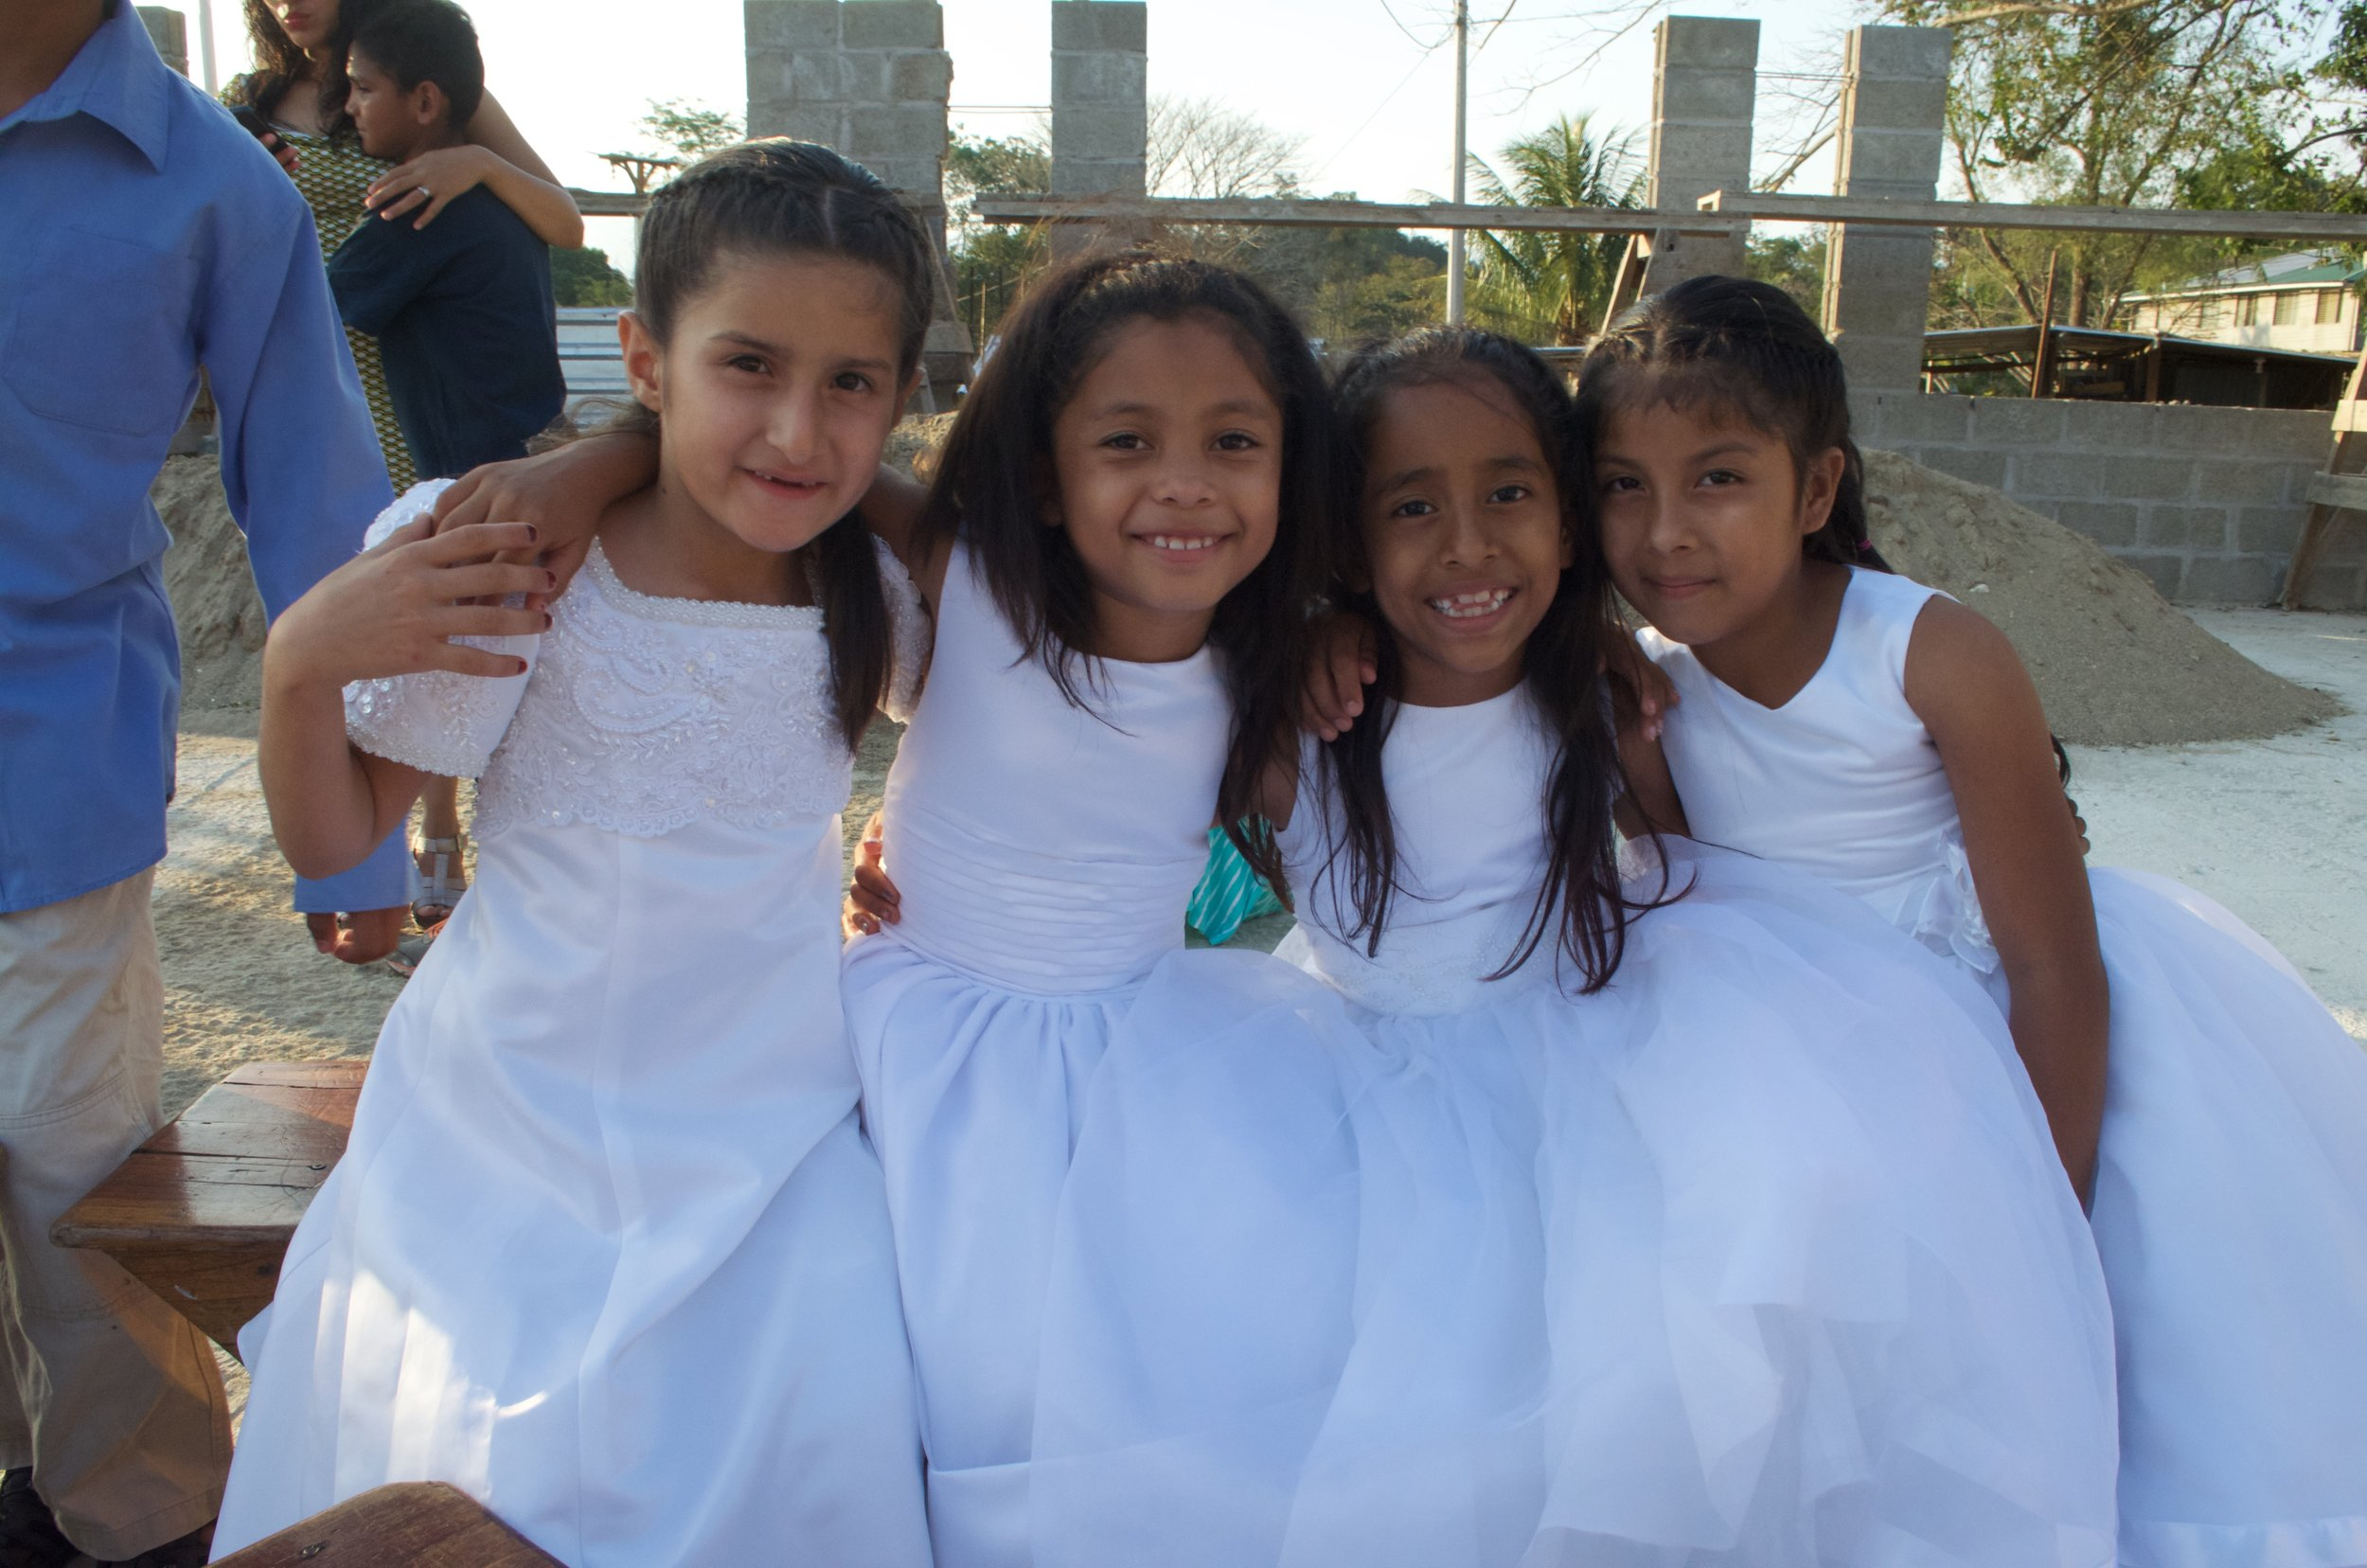 Soledad with several friends posing for a picture before the 2016 Easter Vigil Mass where the four girls received their First Holy Communion.